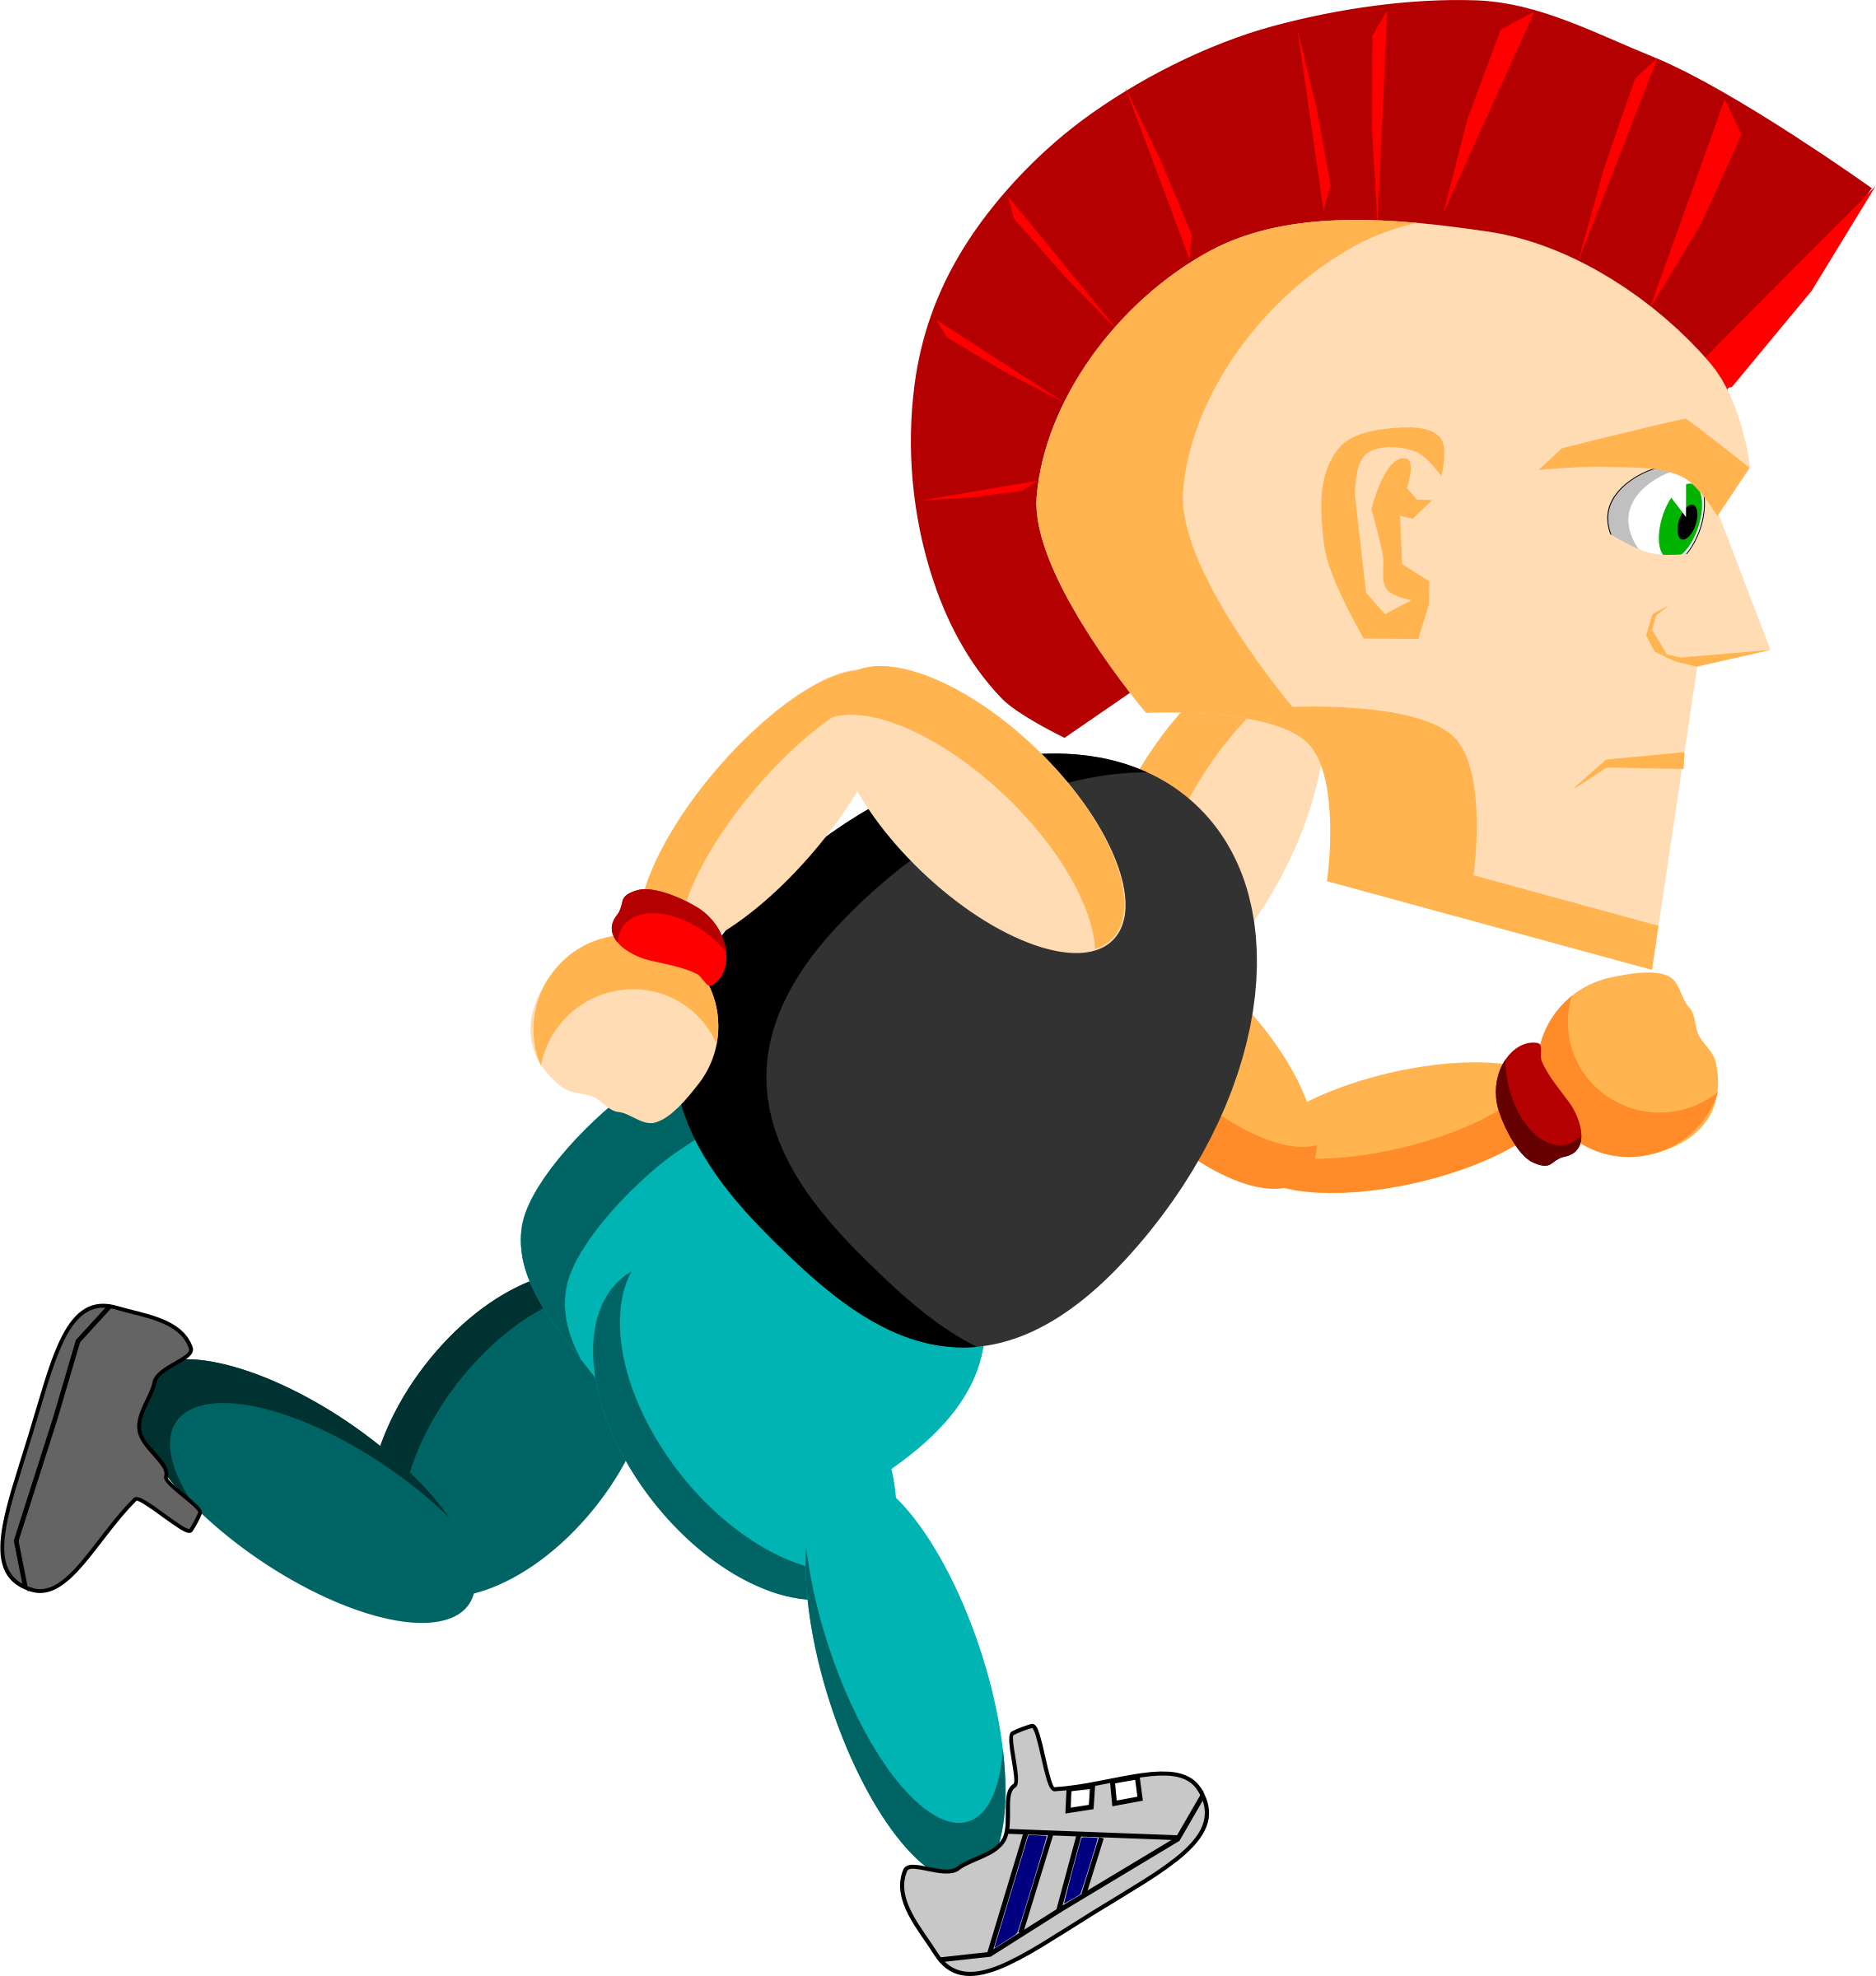 Punk with Mohawk running vector clipart image.